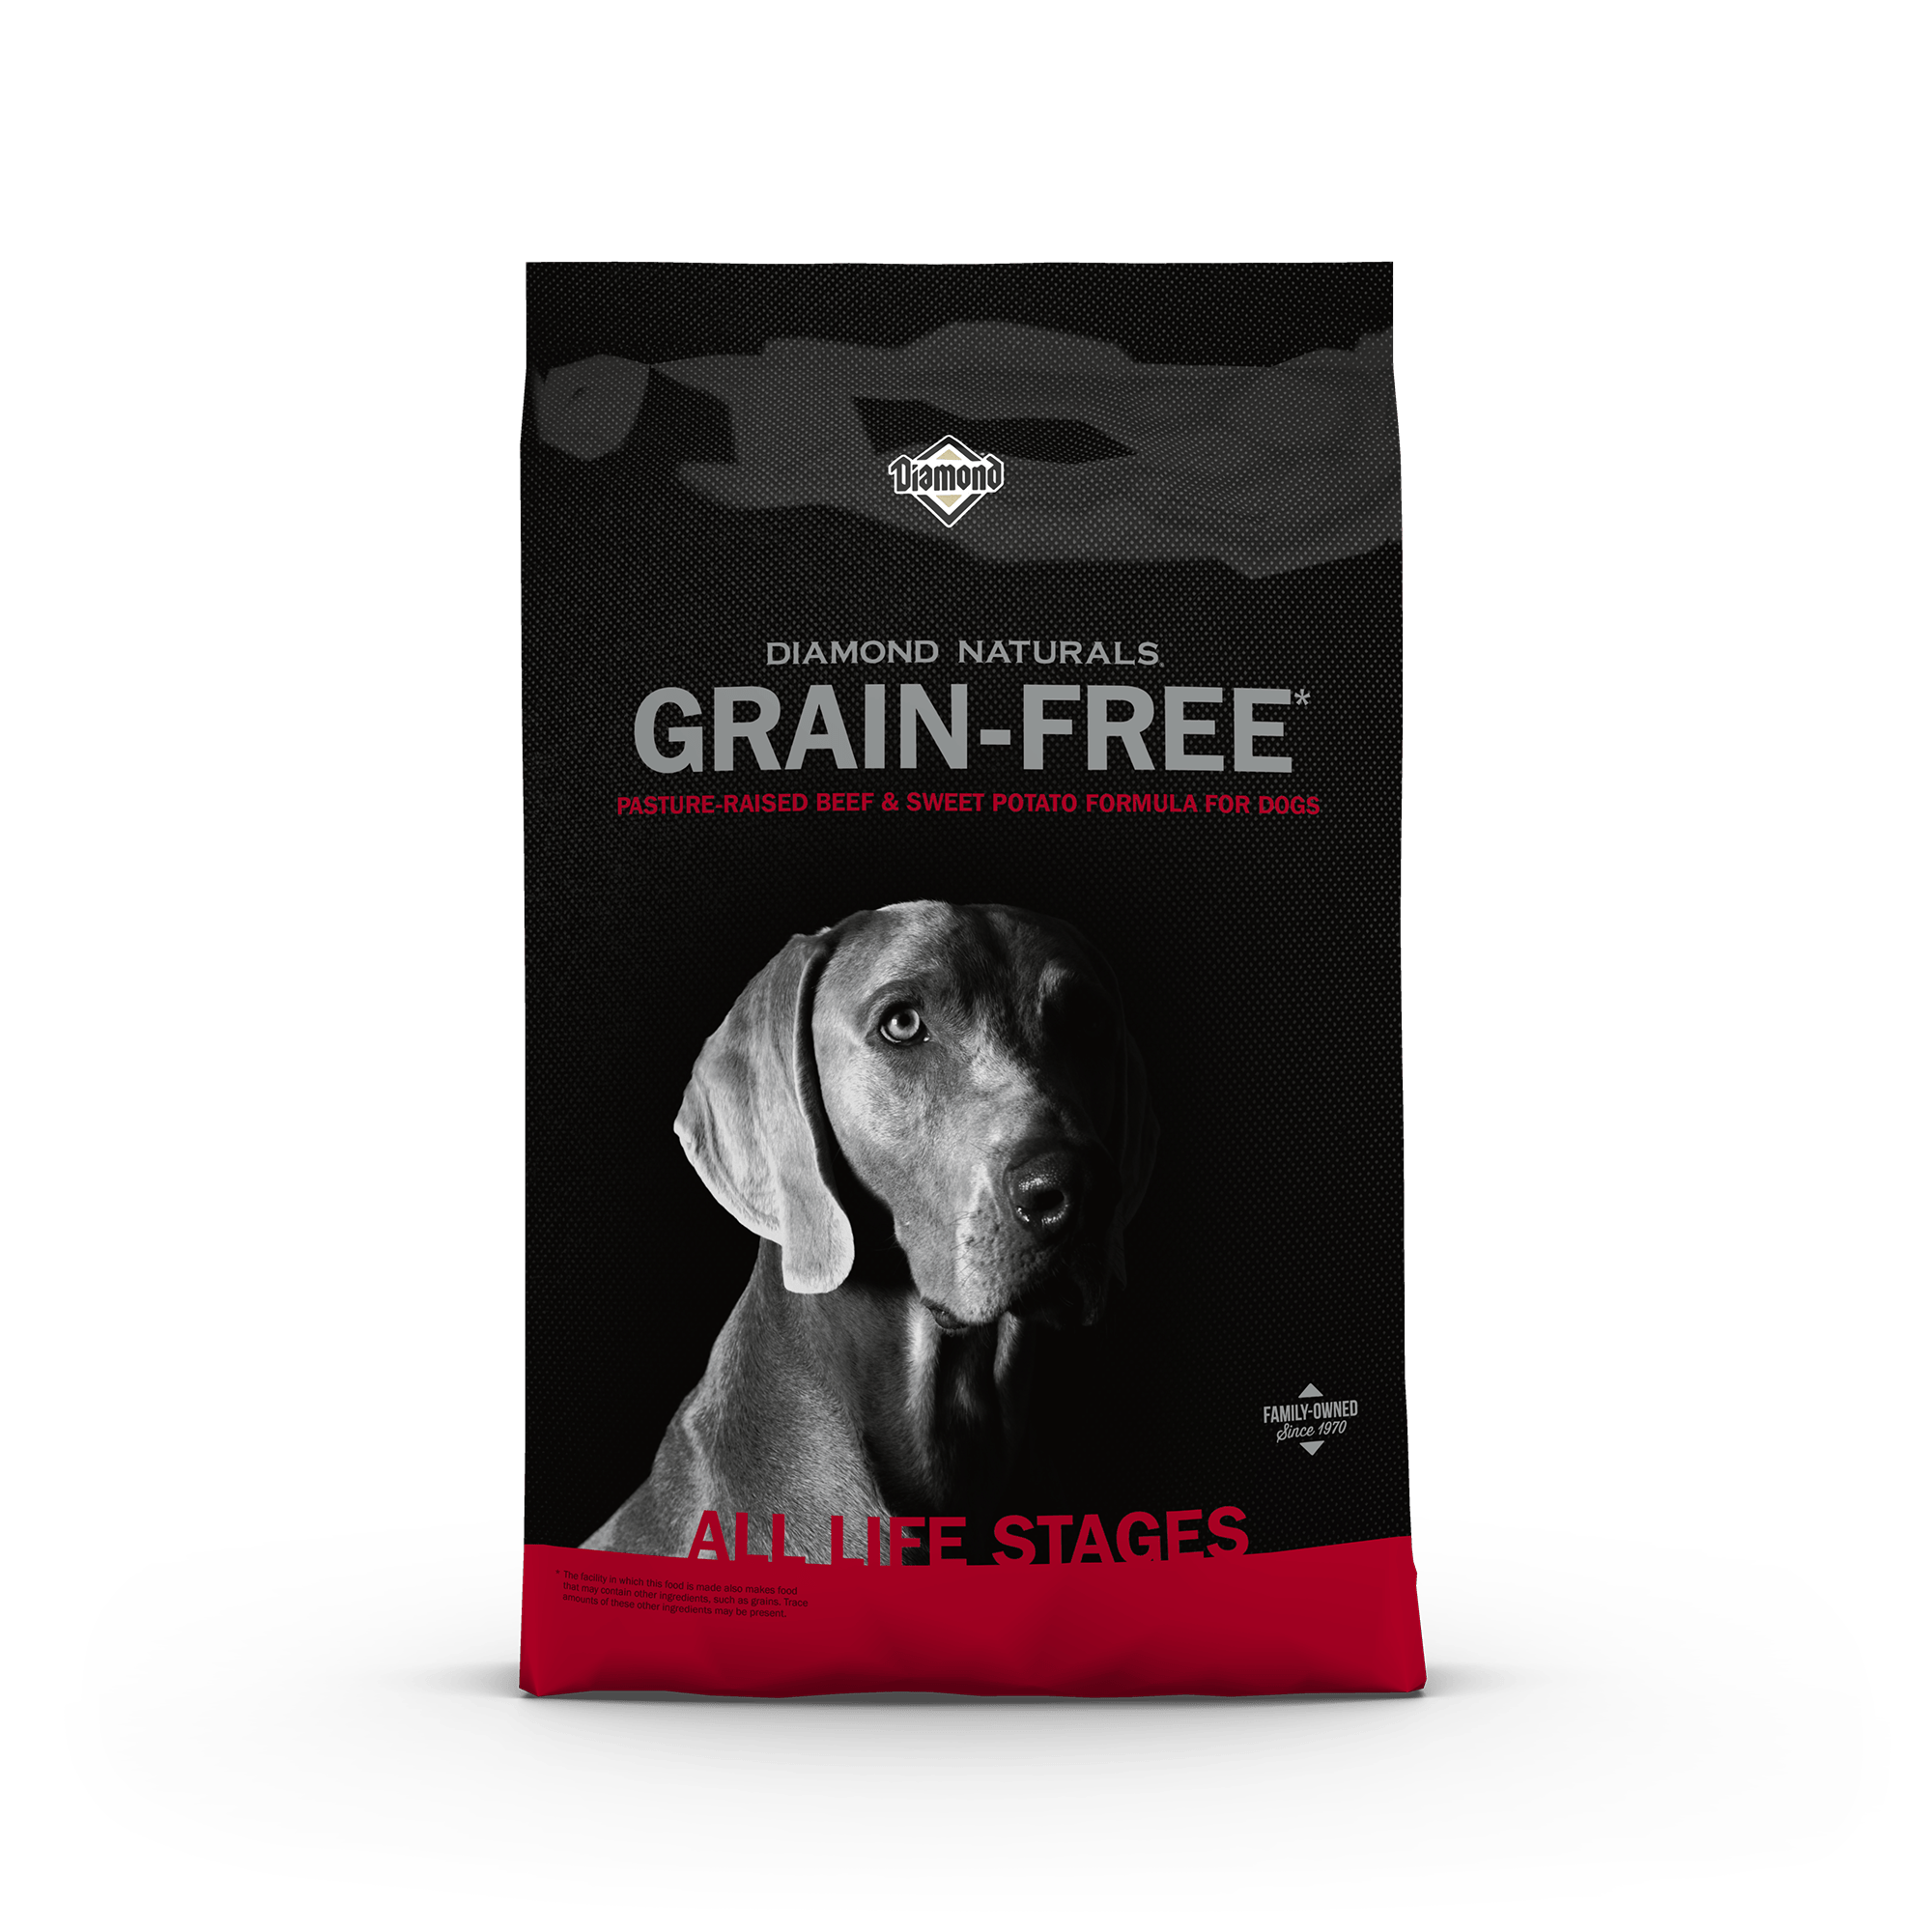 Pasture-Raised Beef & Sweet Potato Formula for Dogs product packaging